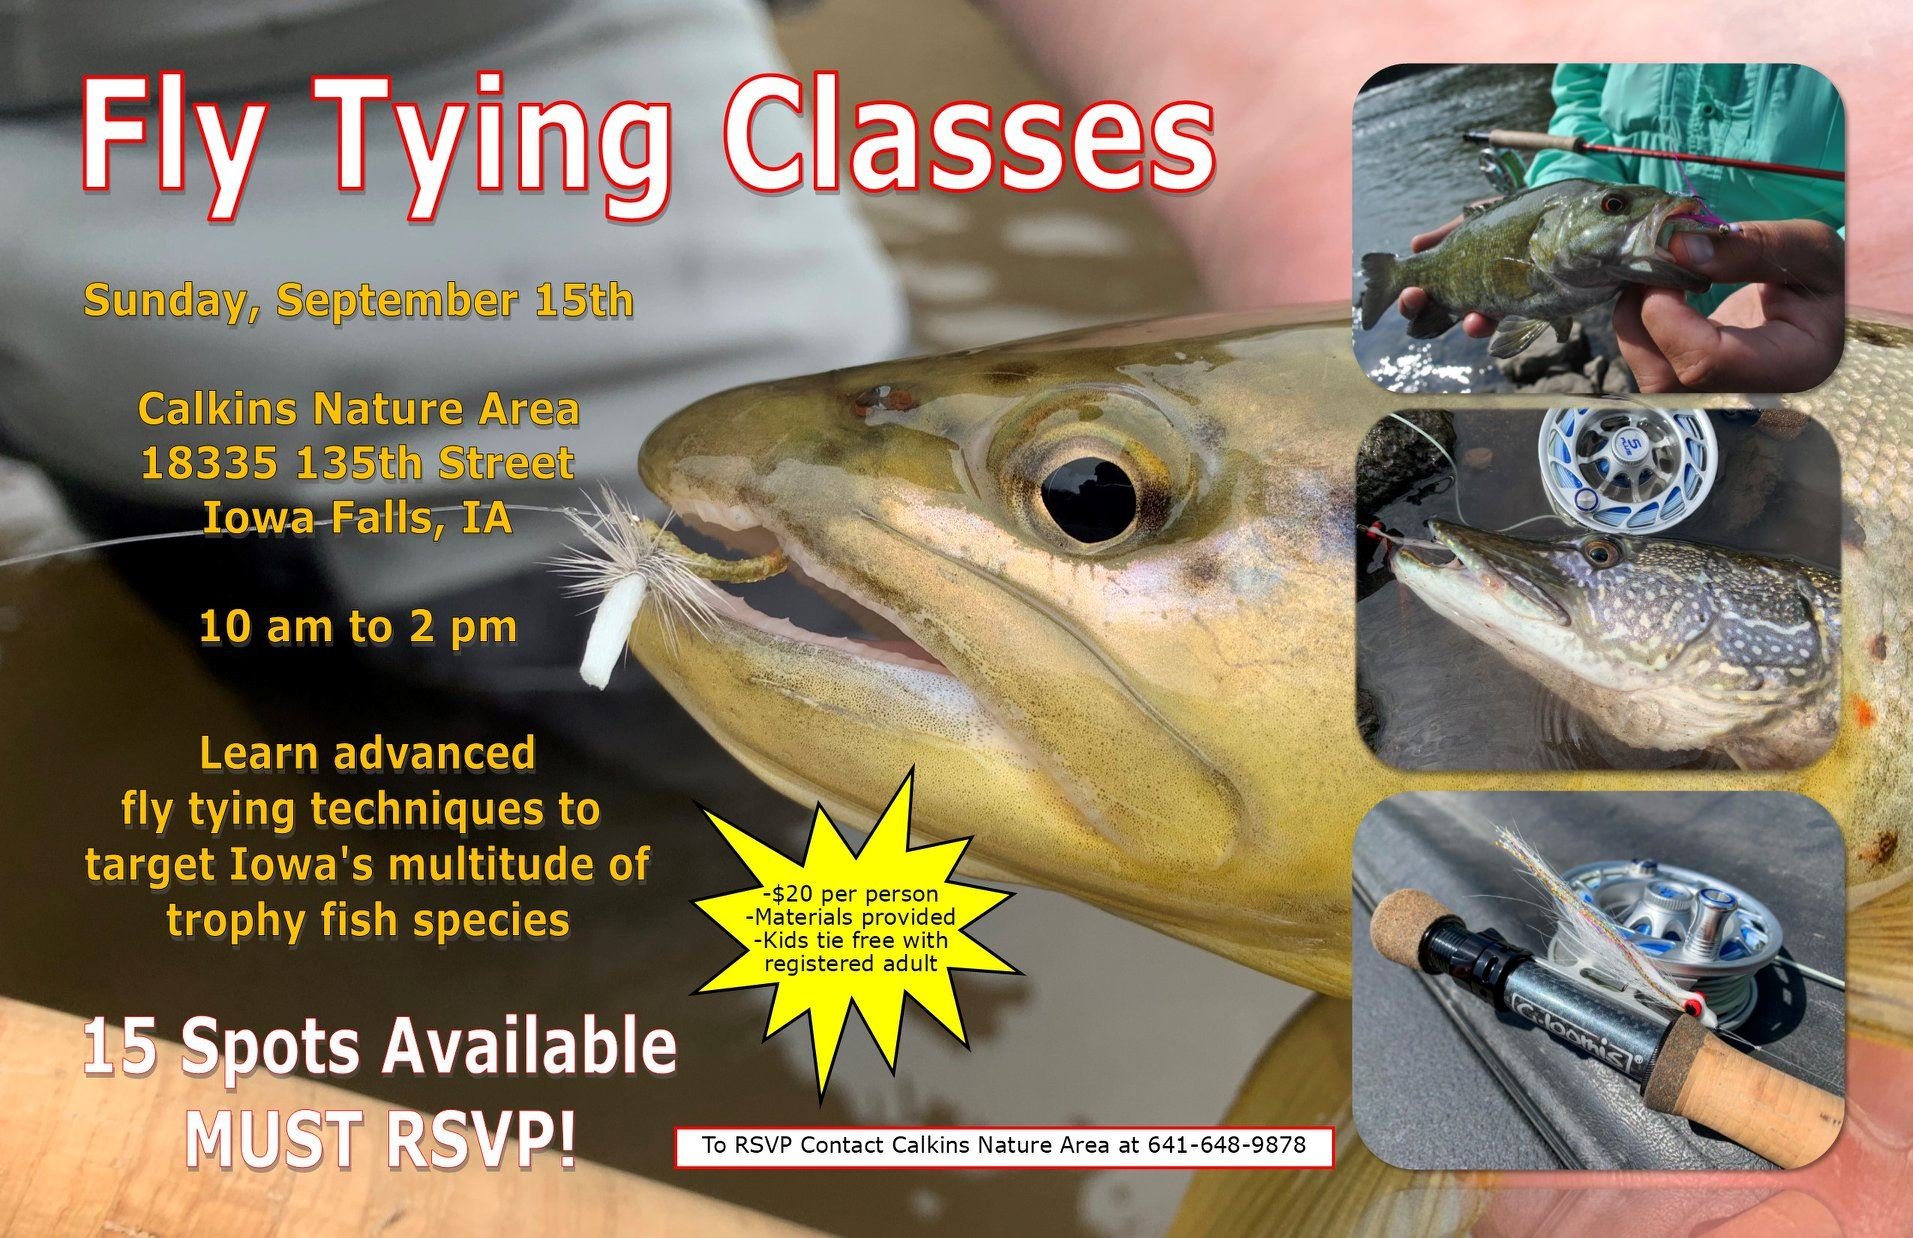 Fly Tying Classes Flyer